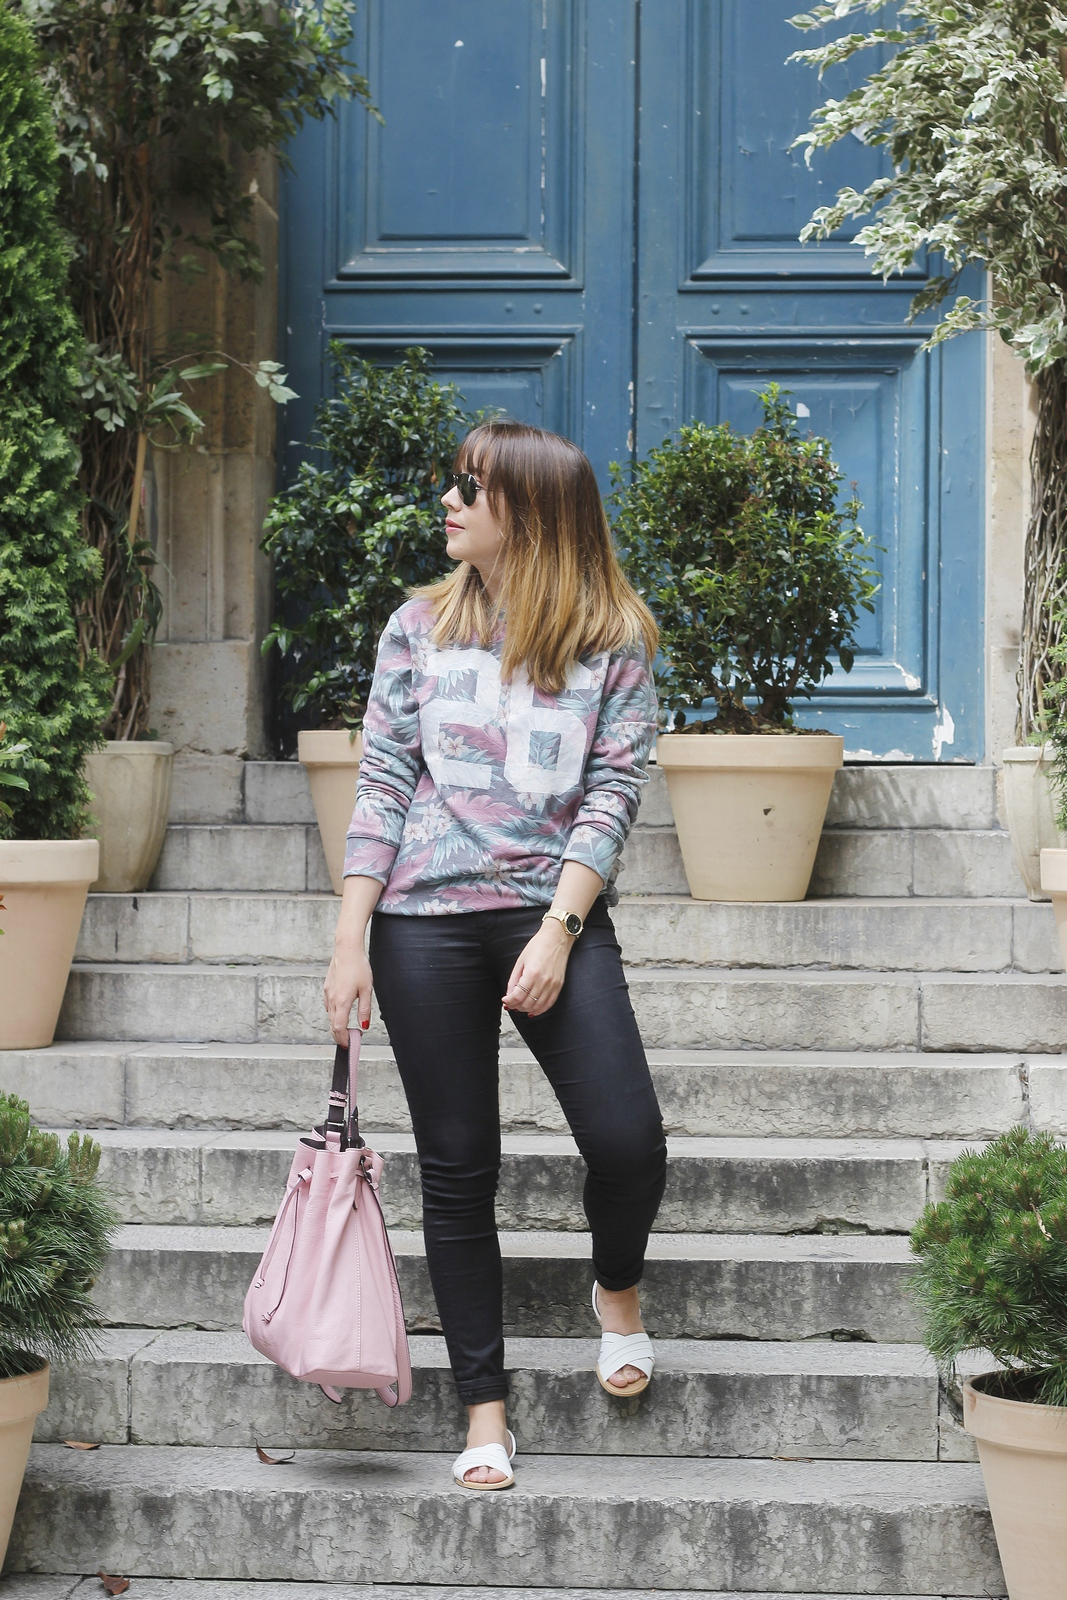 Blog mode femme Paris - Du style, Madame - streetstyle - tropical - kaporal - pauls boutique